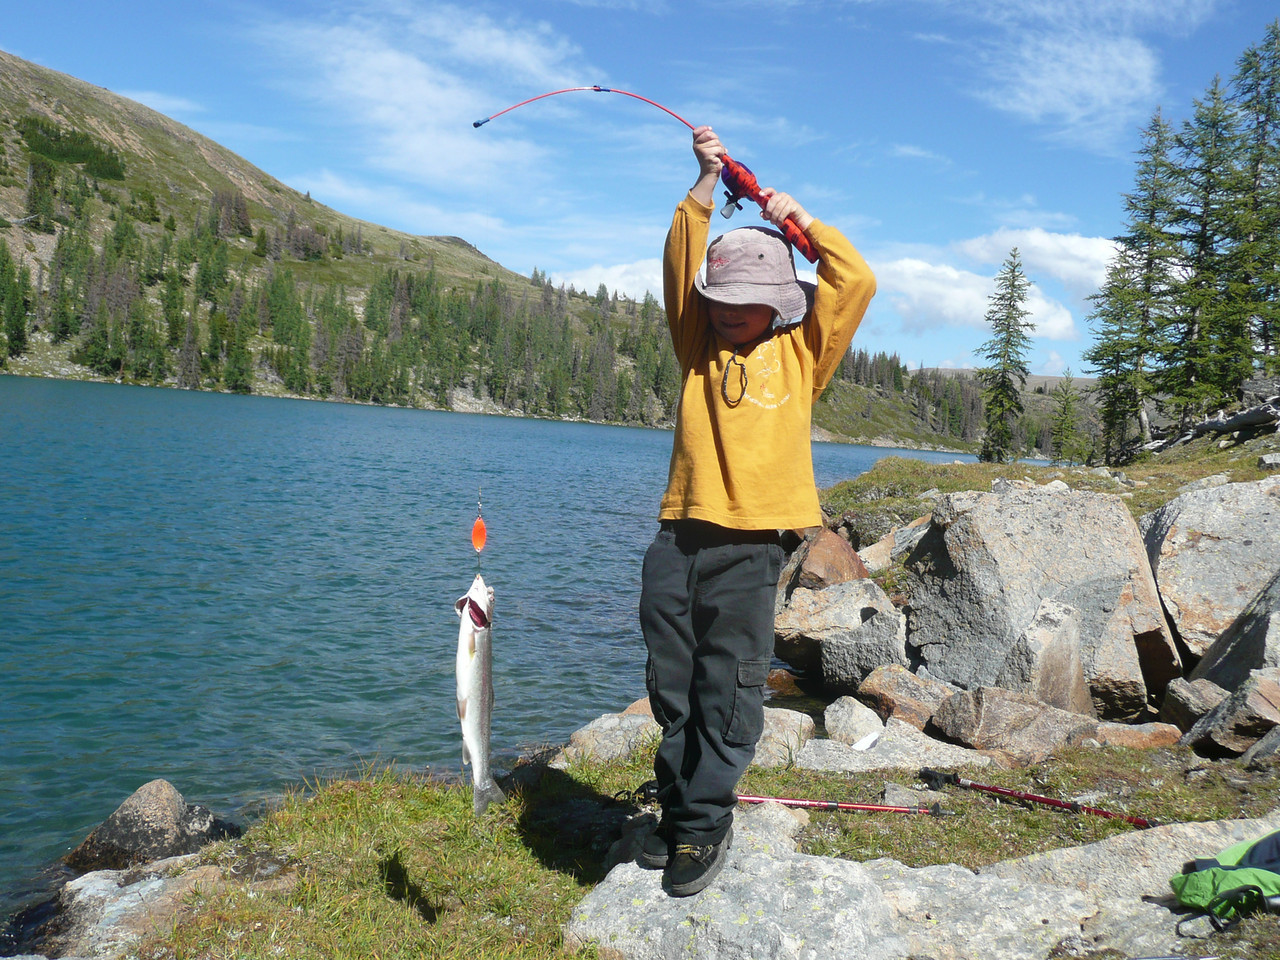 Fishing in the similkameen valley enjoy our rivers and lakes for Good fishing spots near me